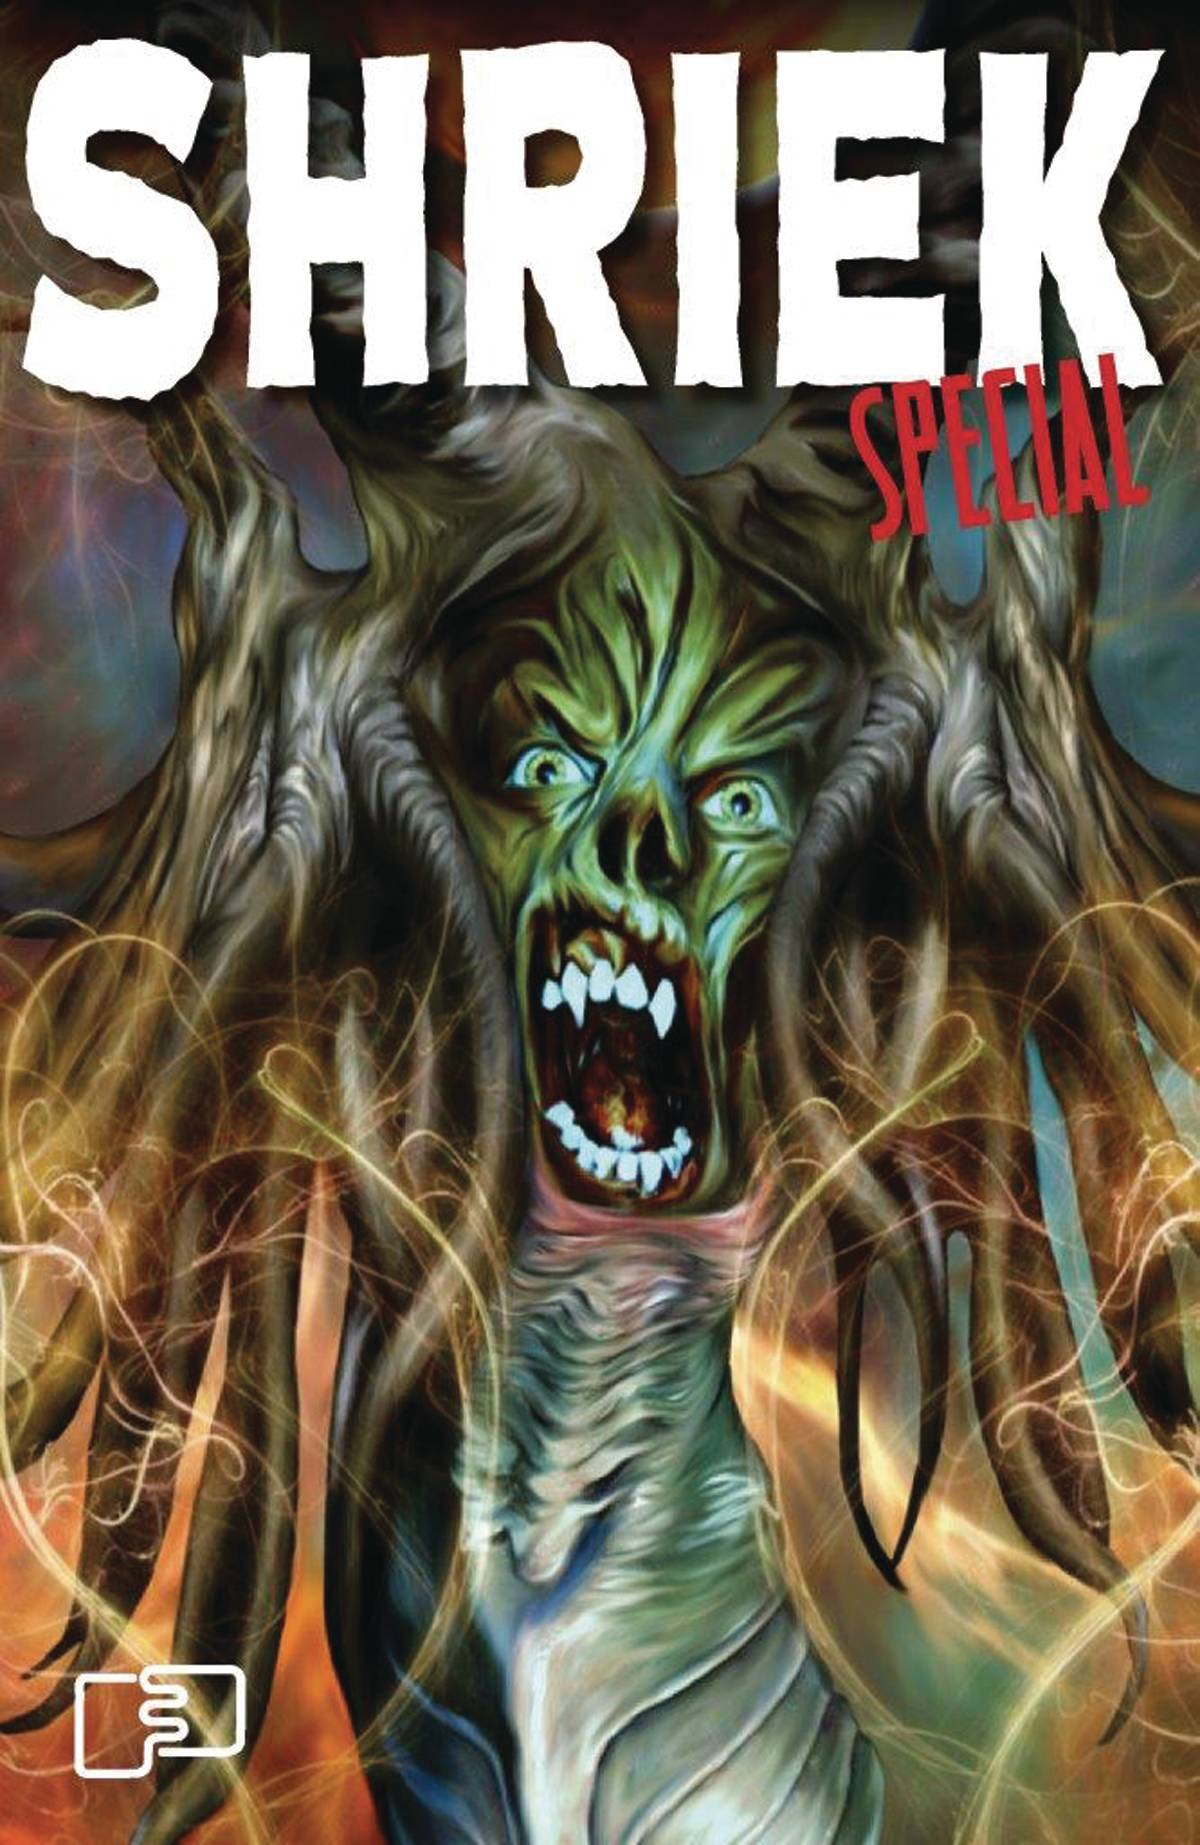 SHRIEK SPECIAL #1 (MR) (C: 0-1-0)